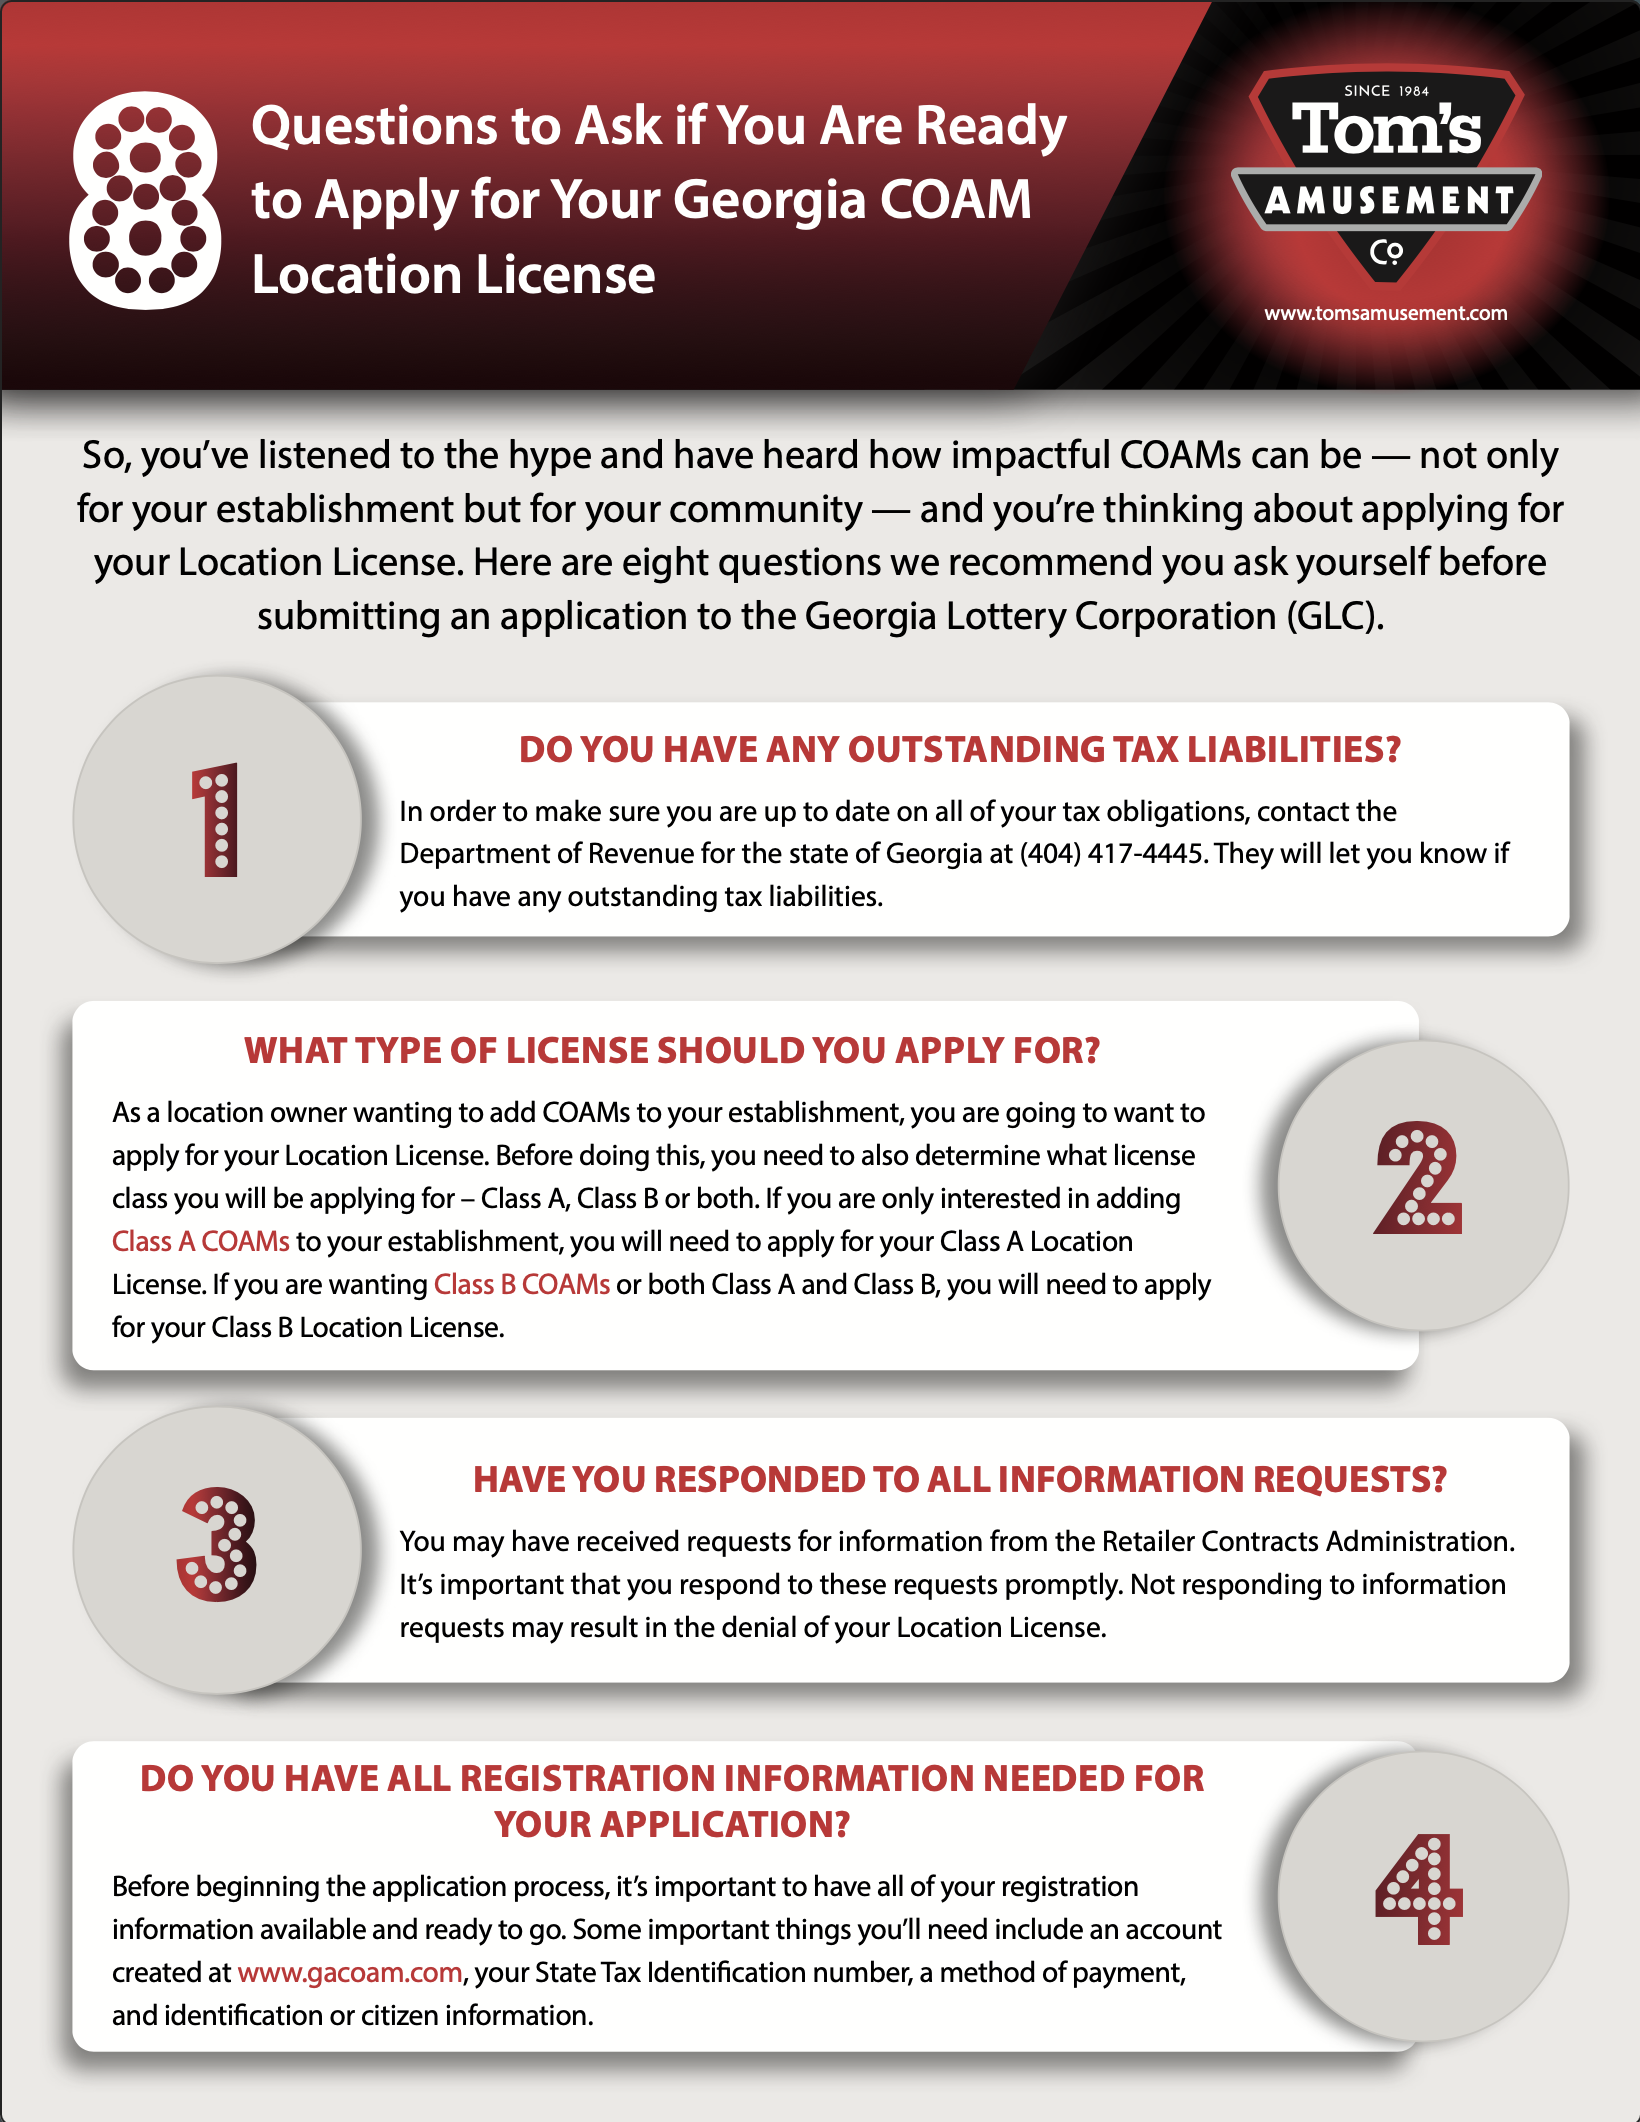 8 Questions to Ask for GA COAM Location License_GA Content Offer_2021_HighRes